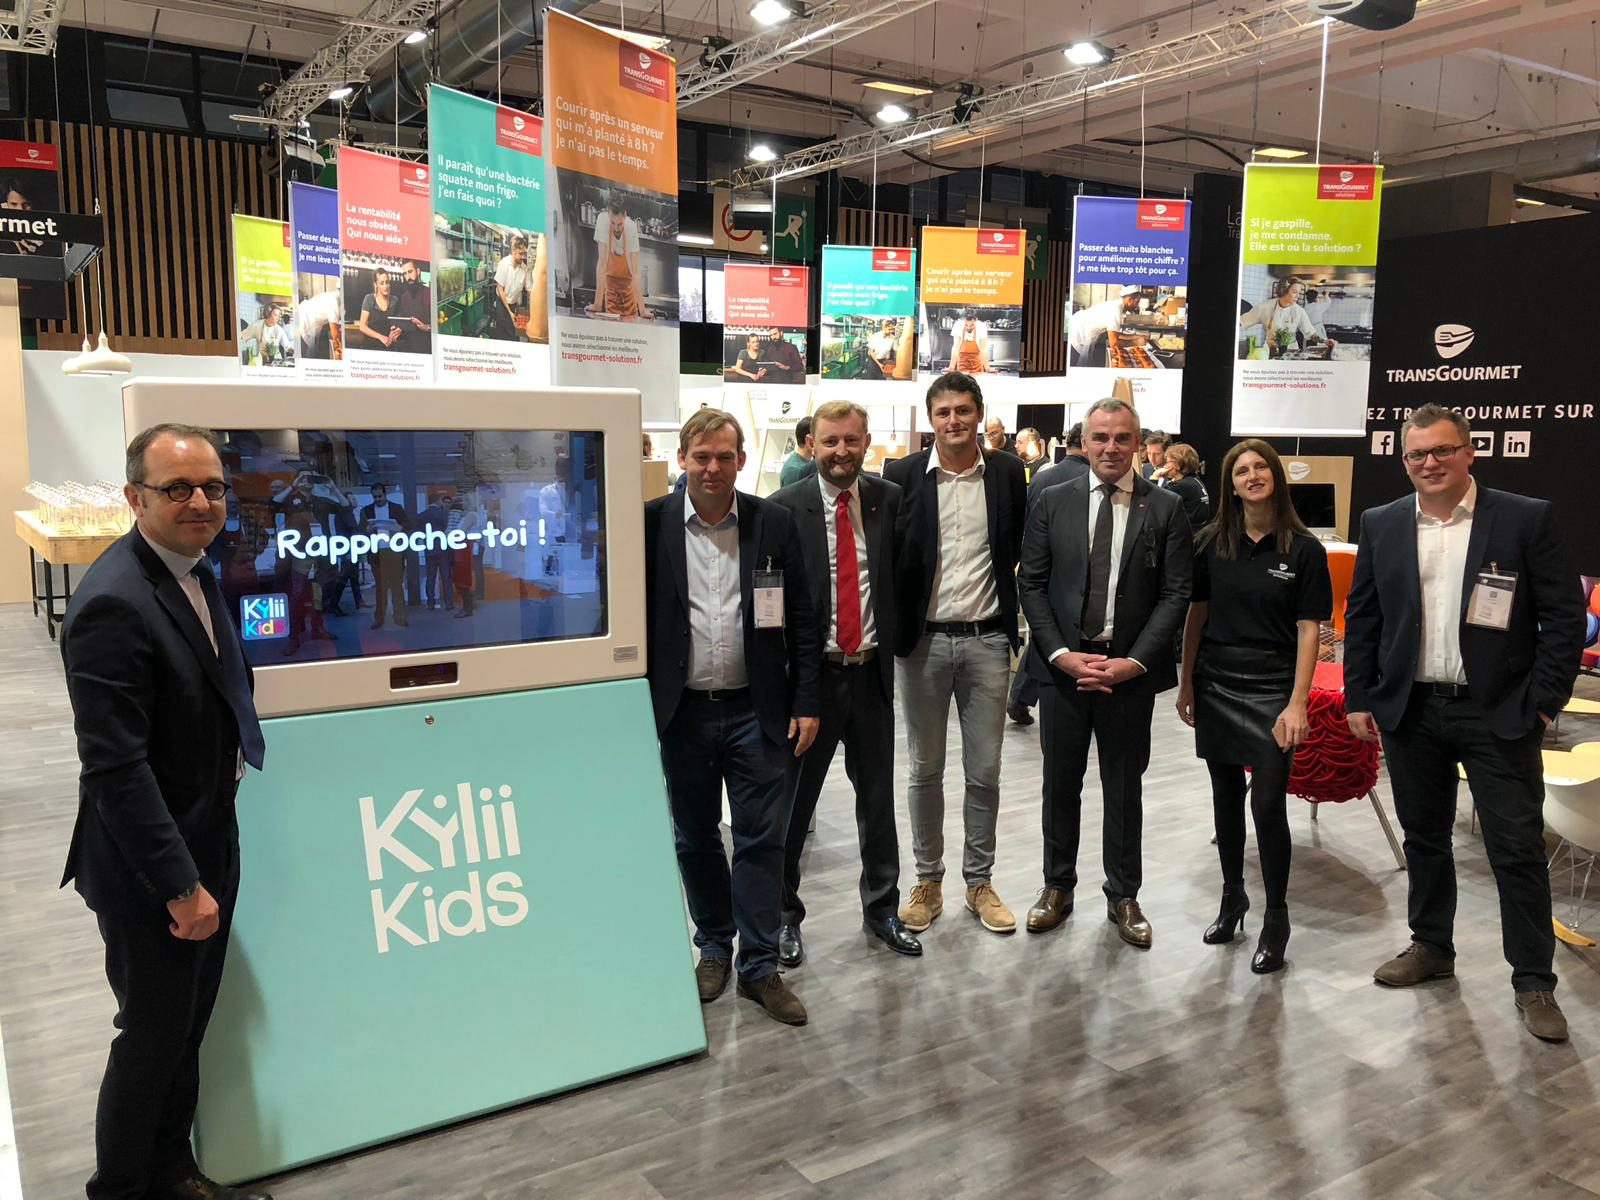 Partnership signed between Transgourmet and Kylii Kids